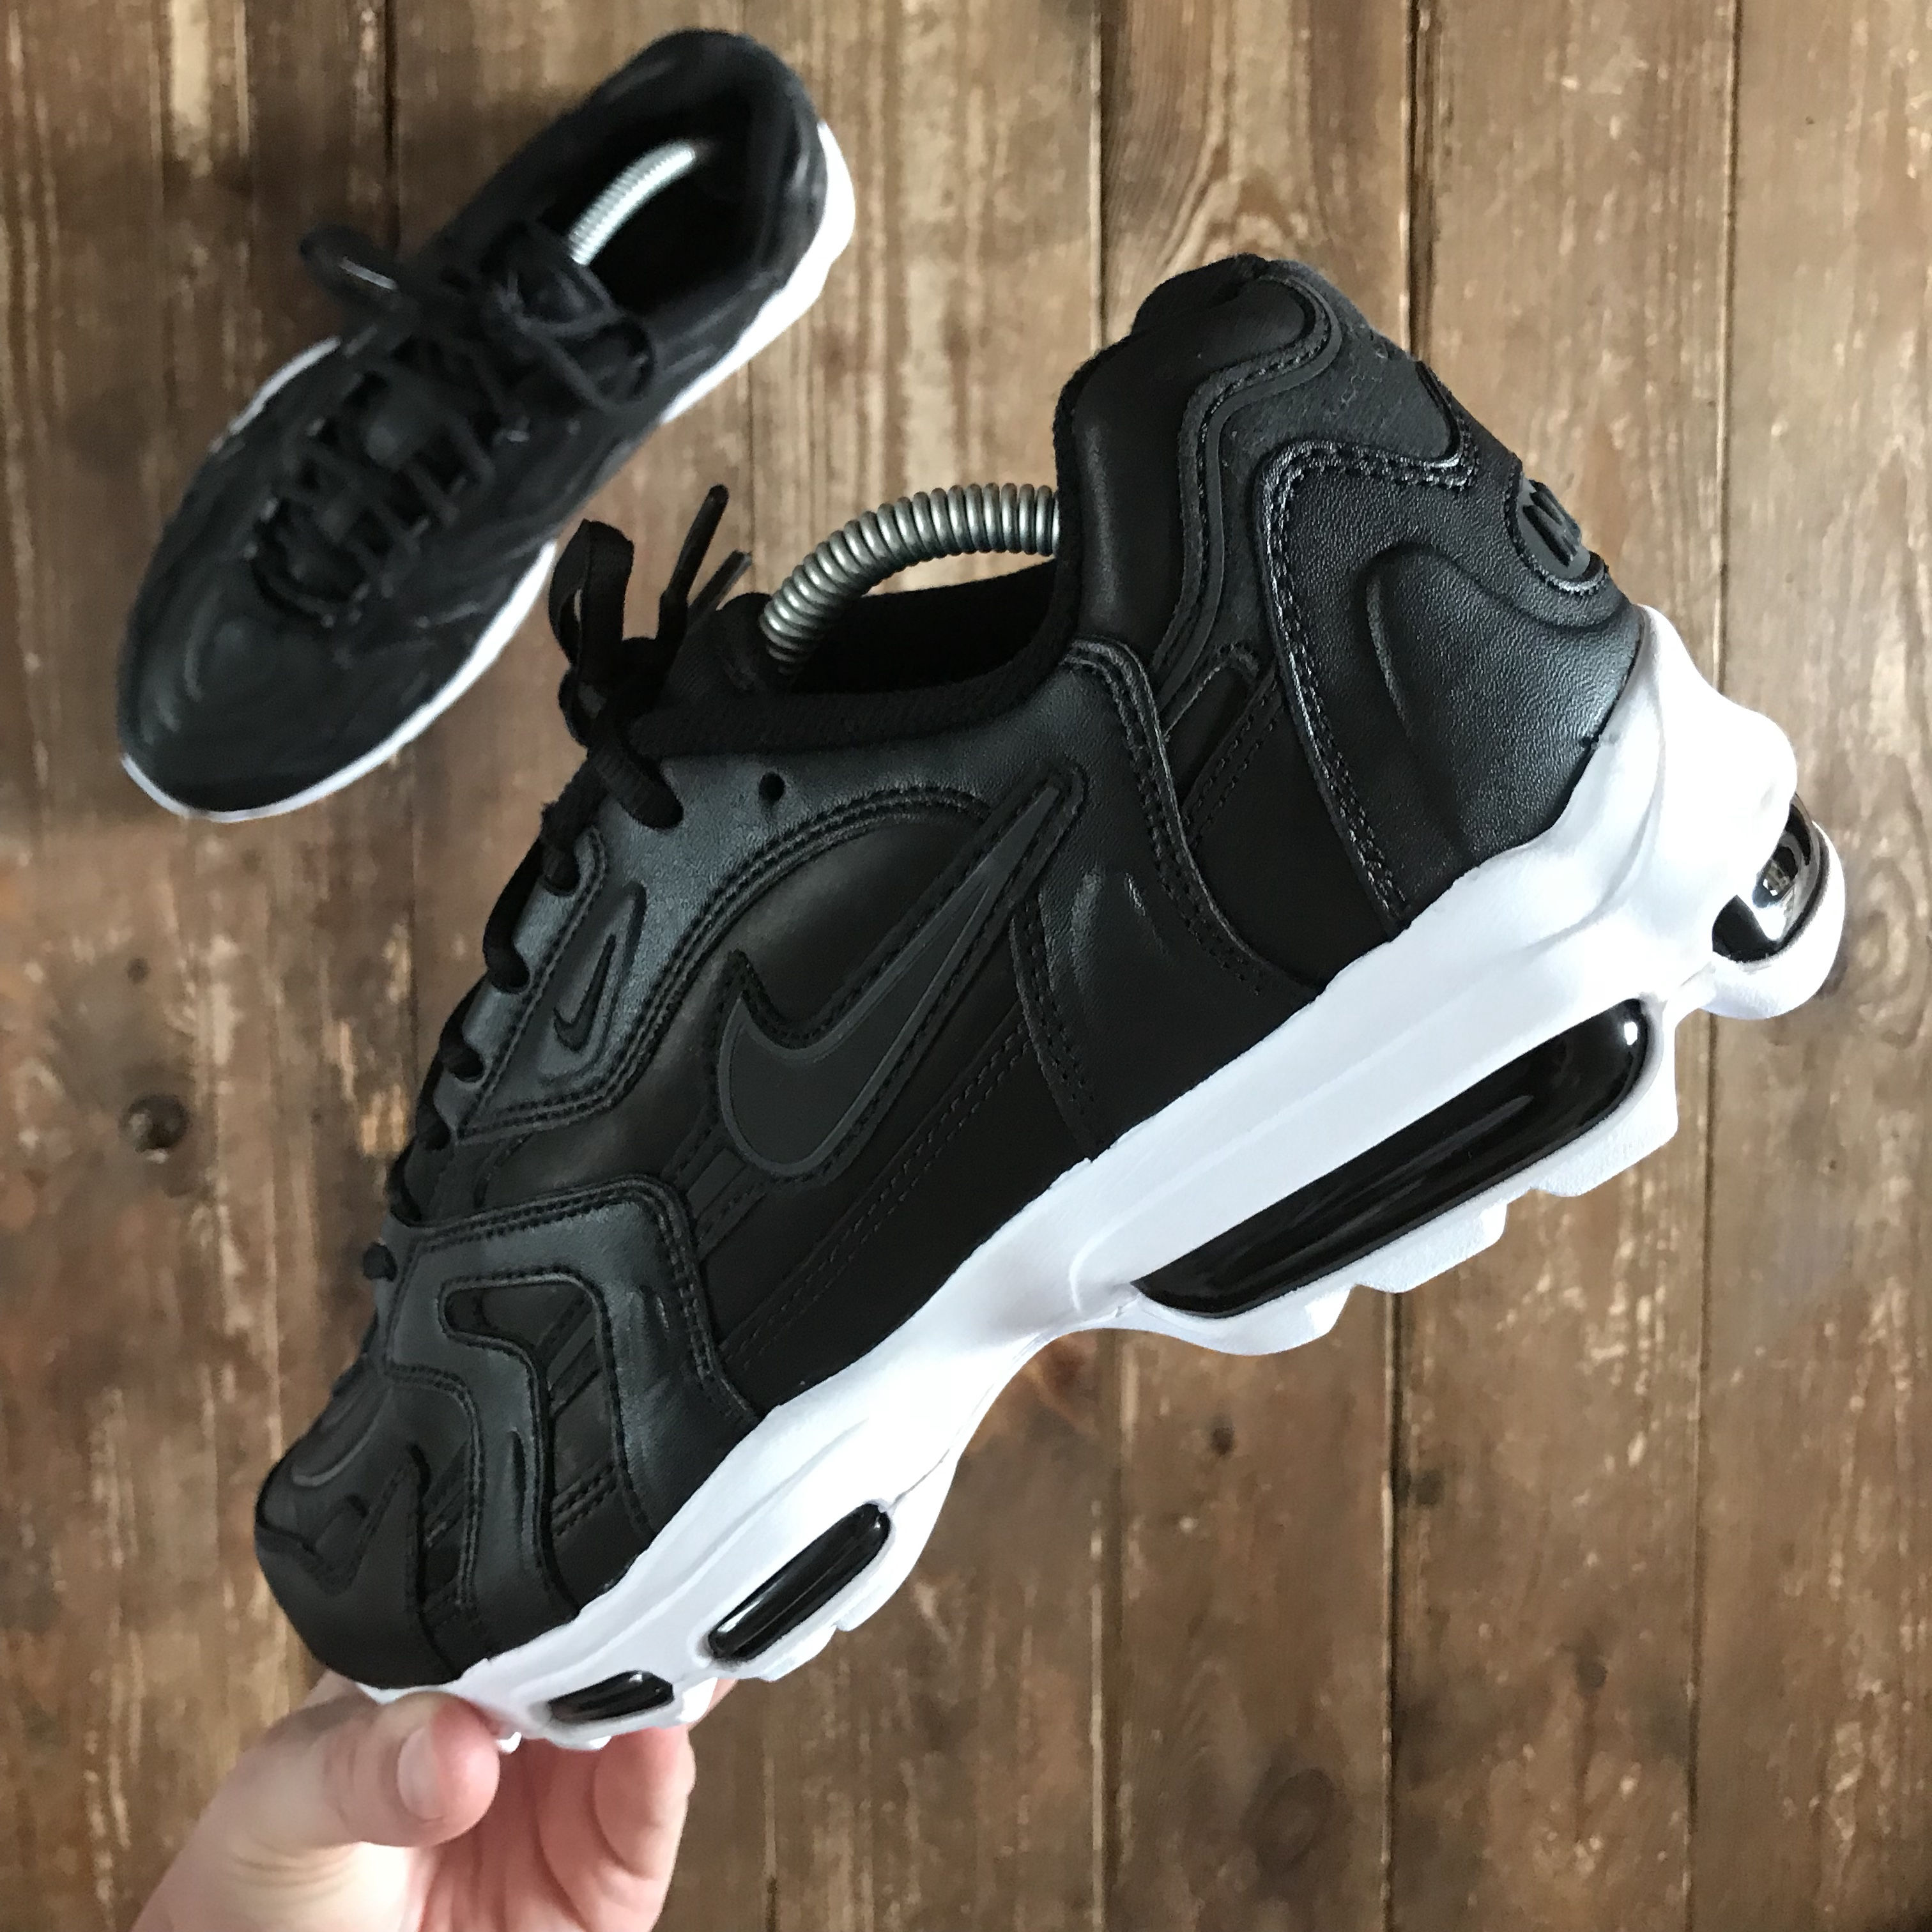 detailing good quality get cheap Nike Air Max 96 ii xx Black/White Size:... - Depop